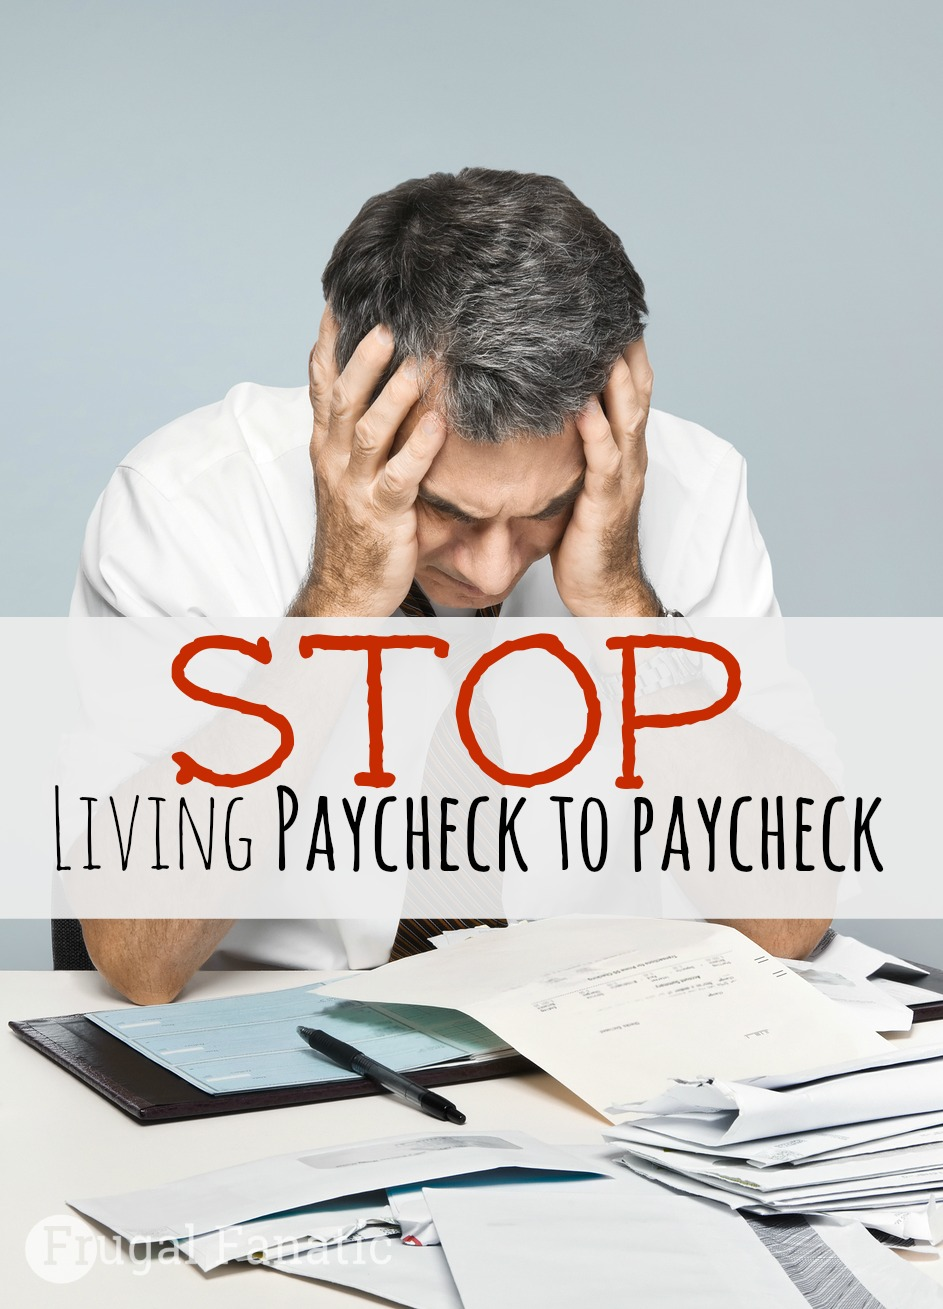 7 tips to avoid living paycheck to paycheck